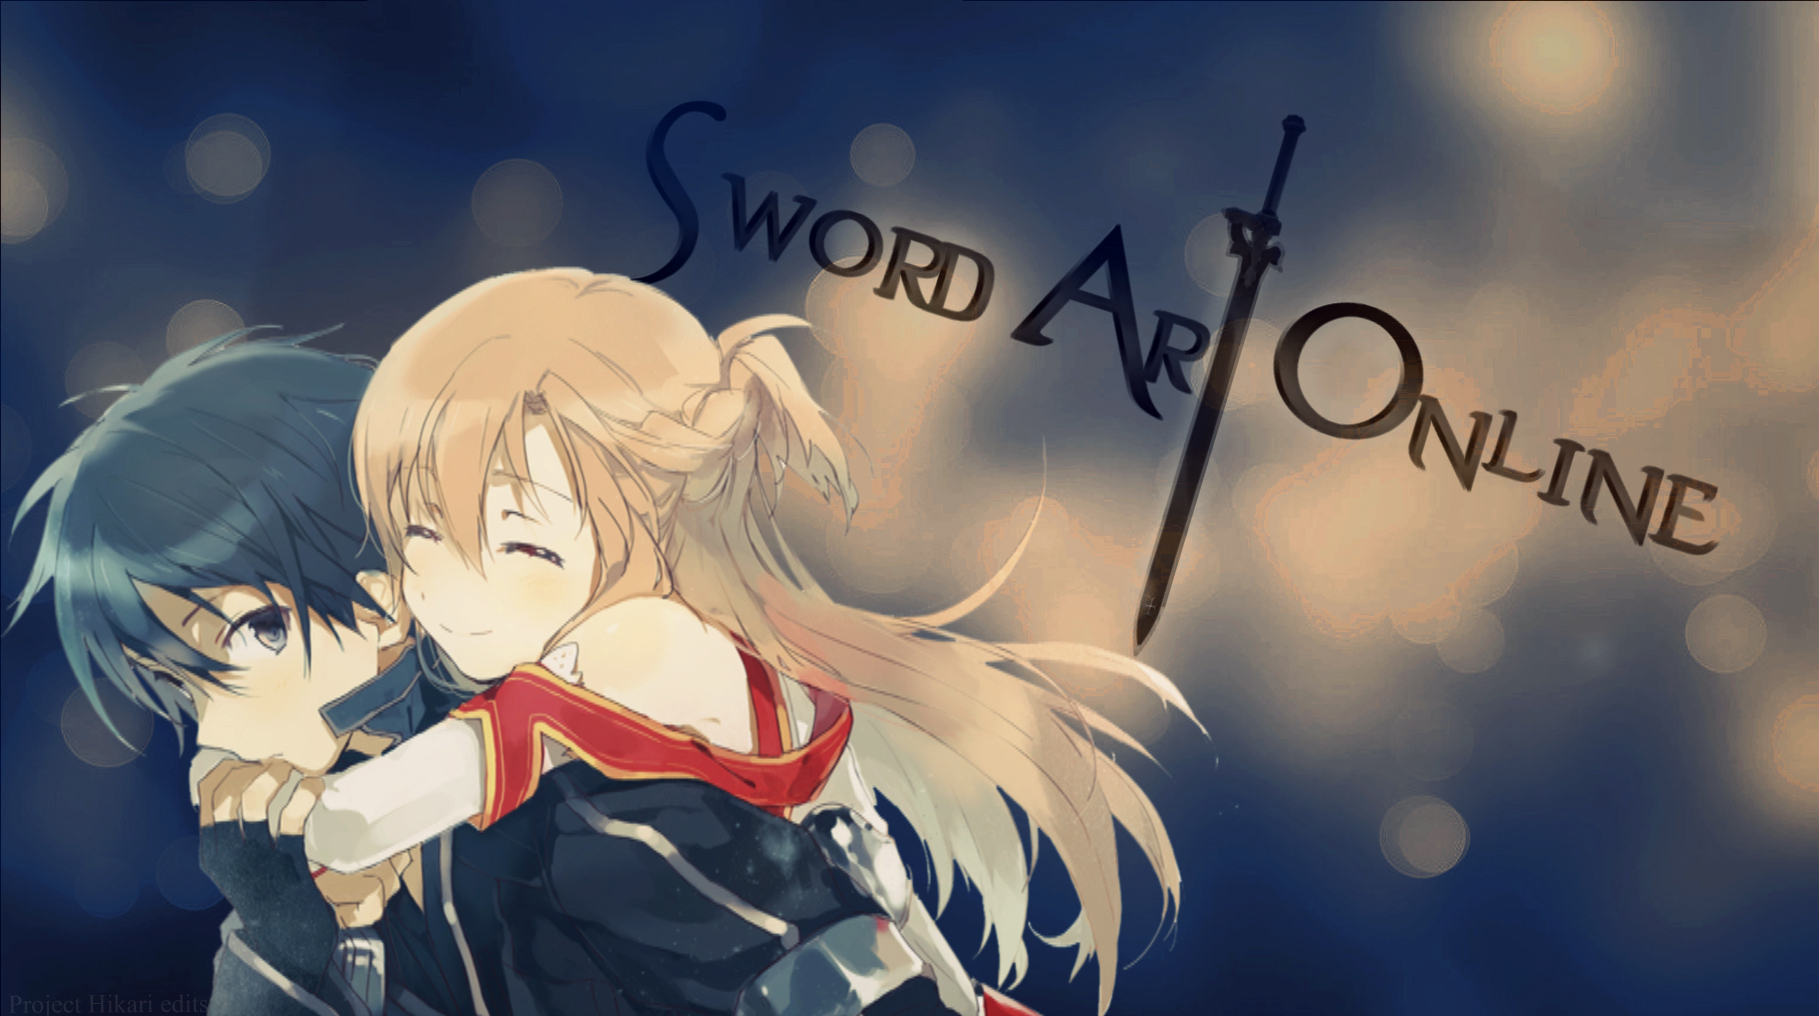 sword art online desktop wallpaper